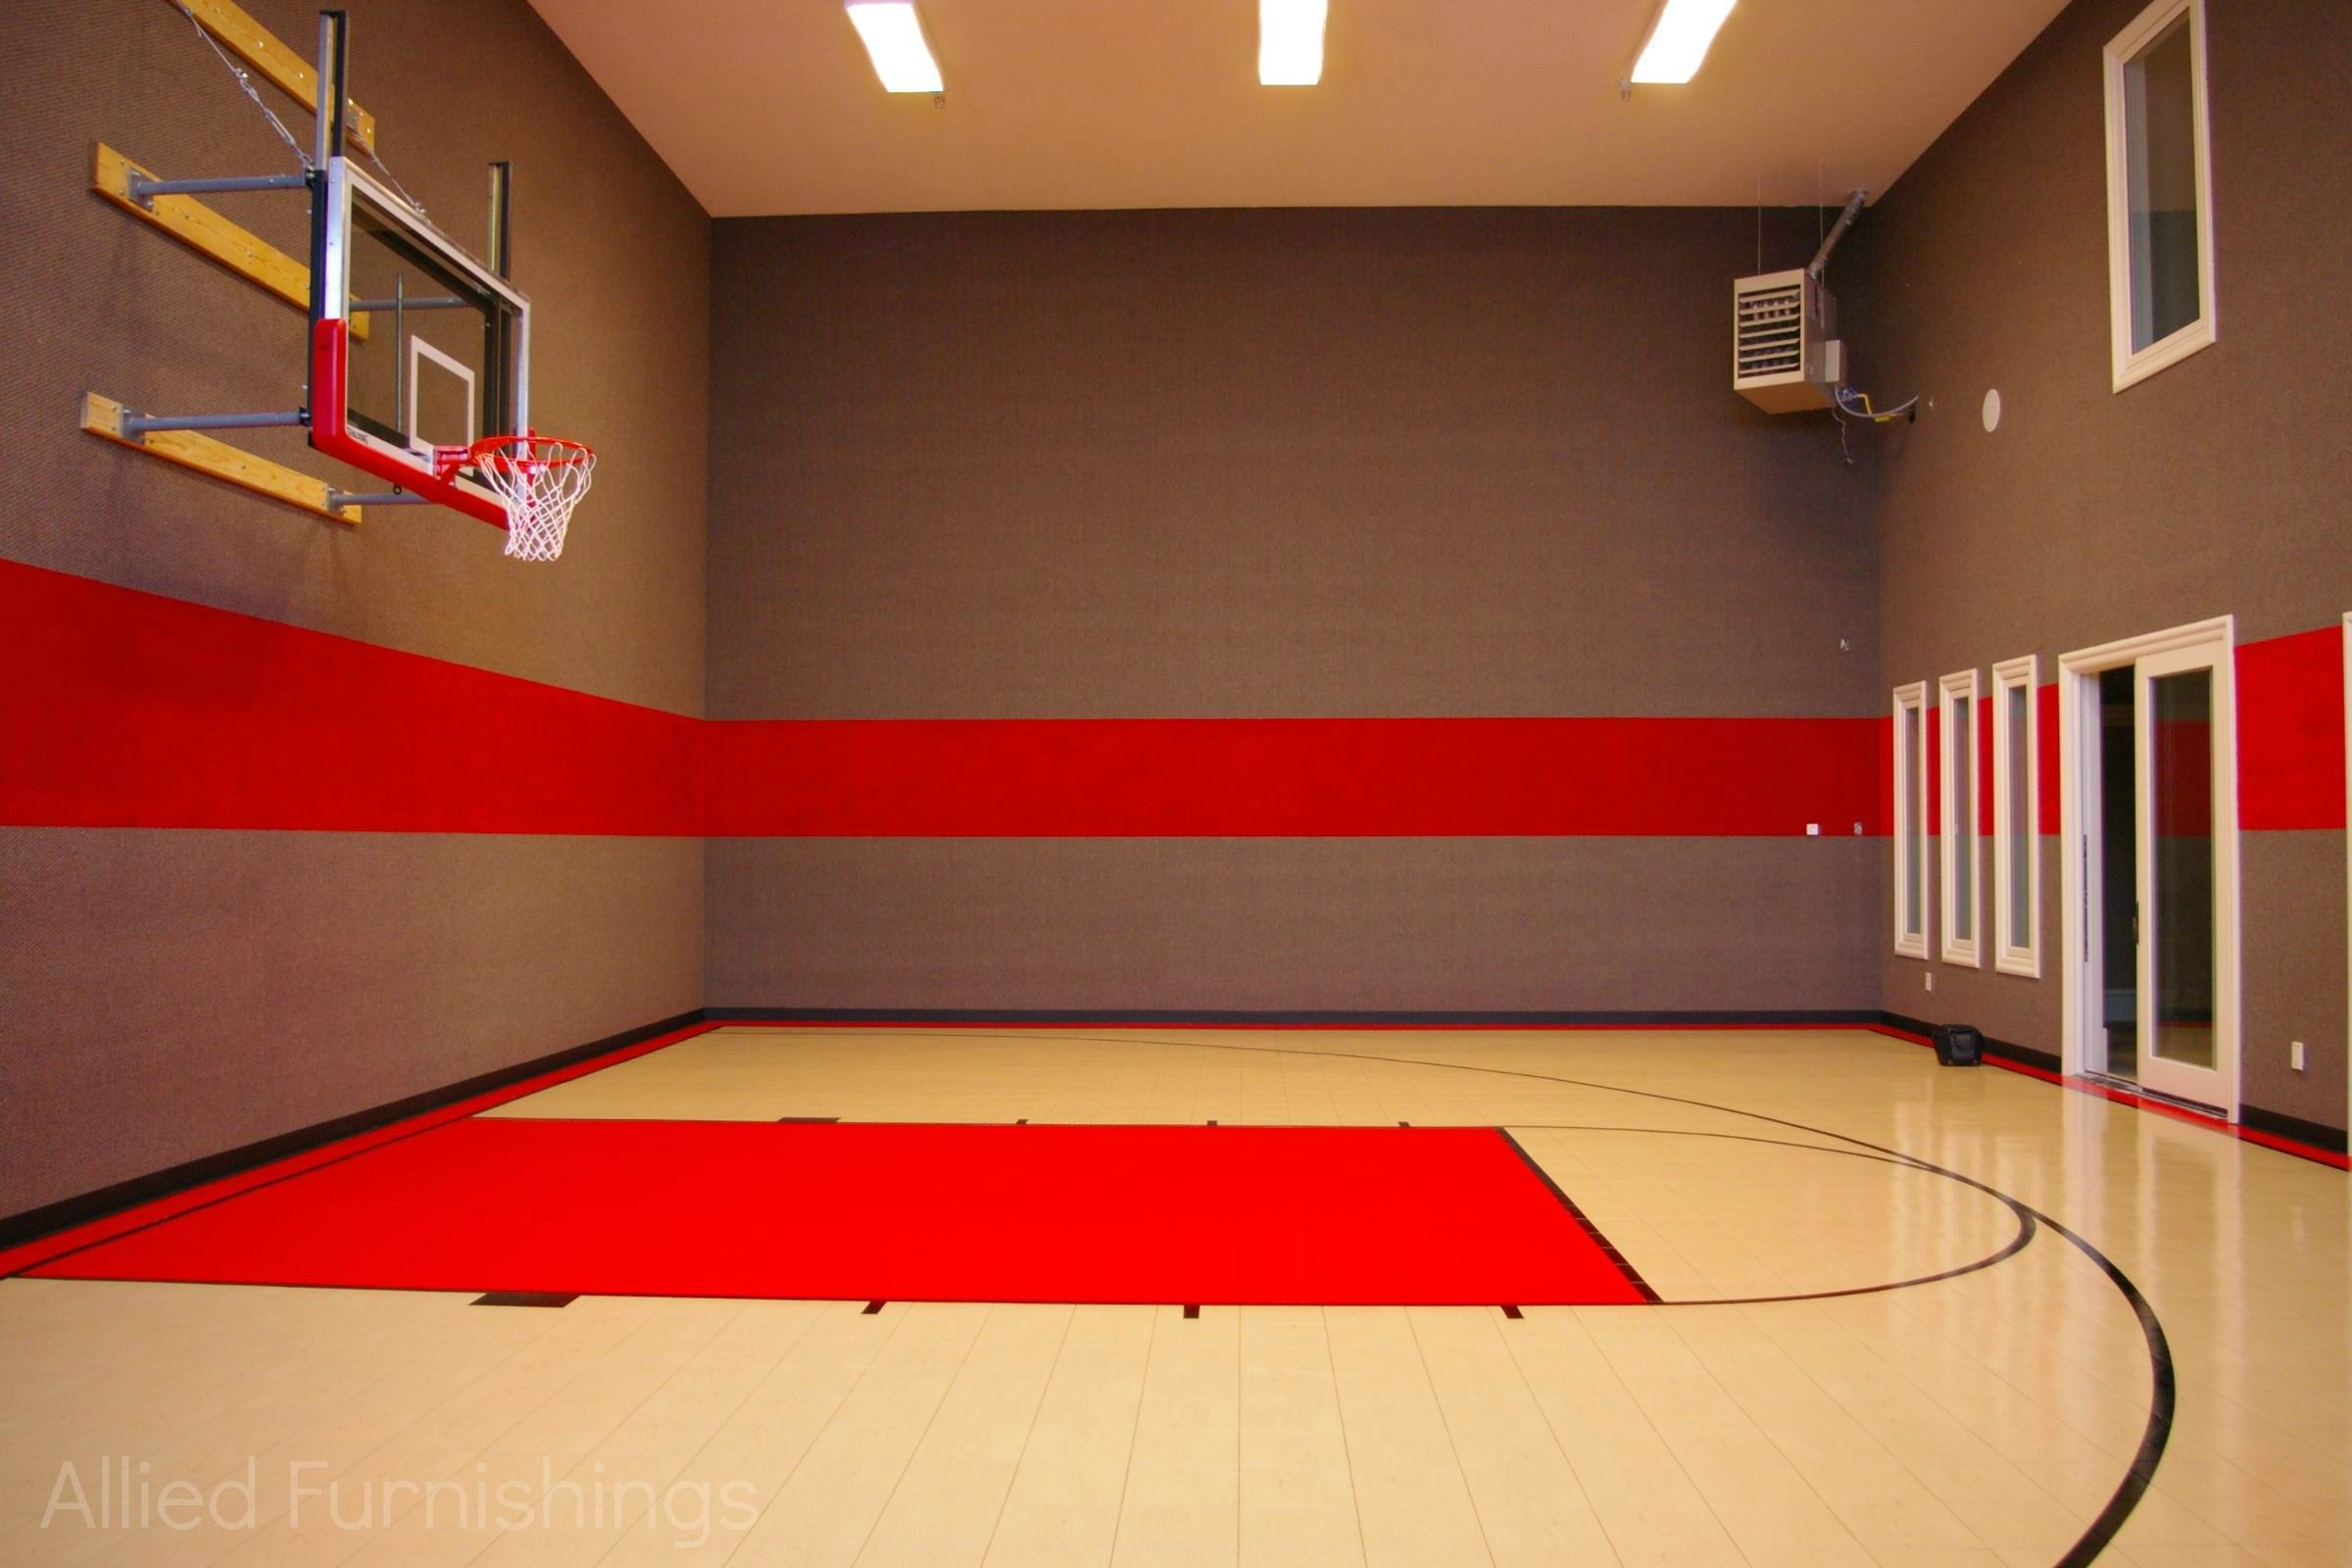 basketball physical floors size sport red set floor lda sensory dav product needs and spt resources